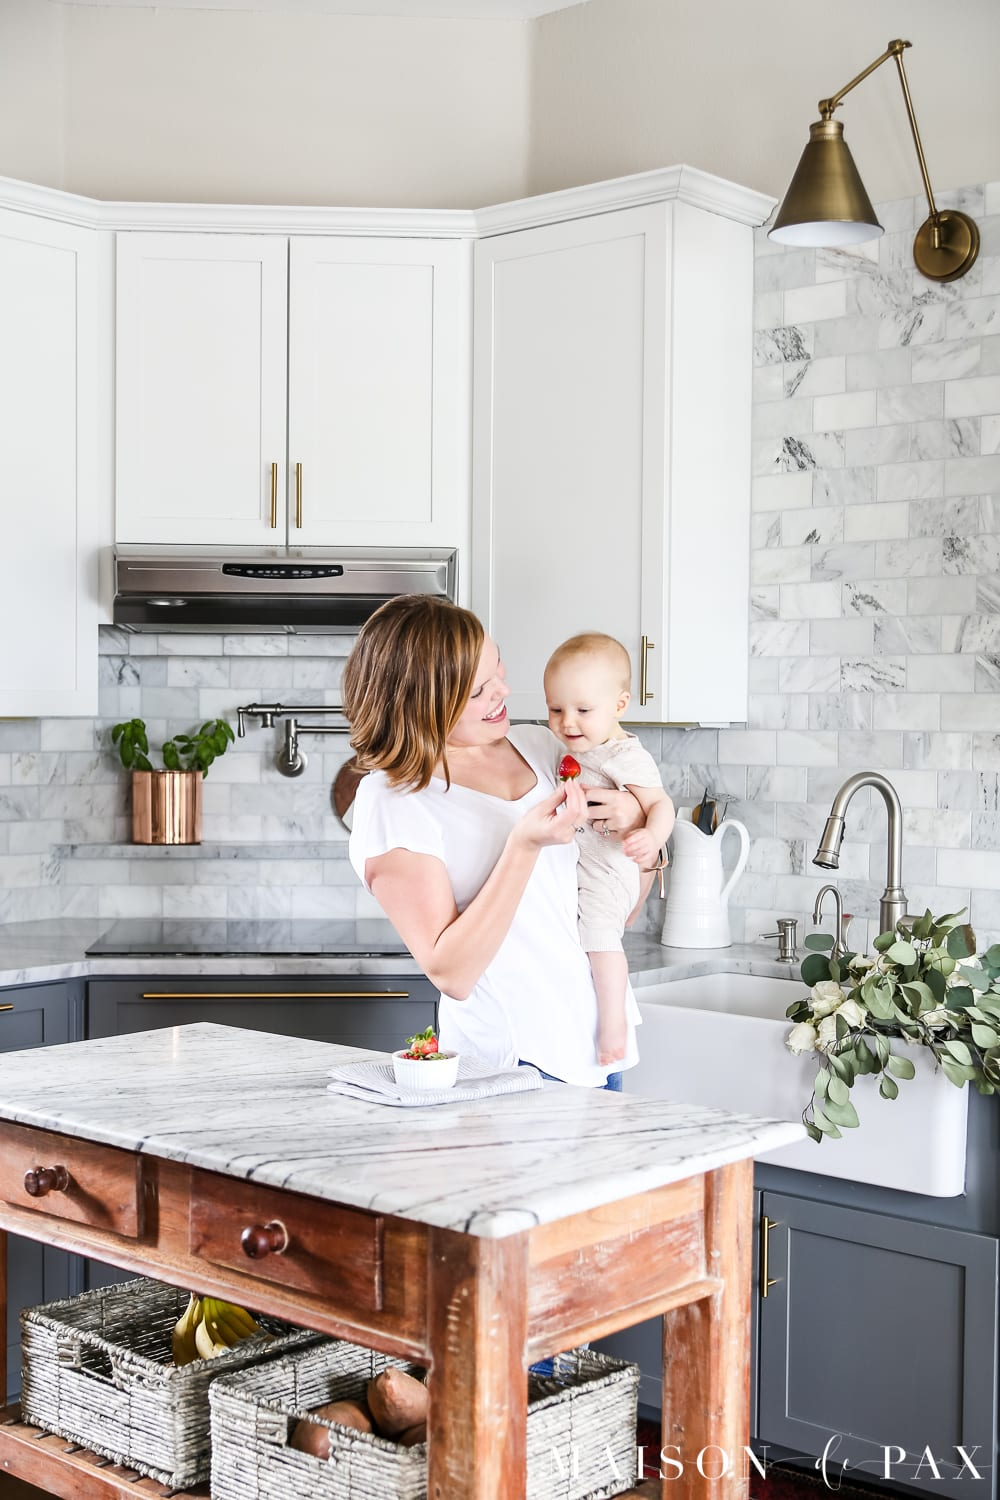 Looking for simple spring kitchen inspiration?  Get quick tips on adding a fresh, clean feeling to your kitchen this spring. #springkitchen #kitcheninspo #marblekitchen #kitchendesign #springdecor #springdecorating #kitchendecor #twotonekitchen